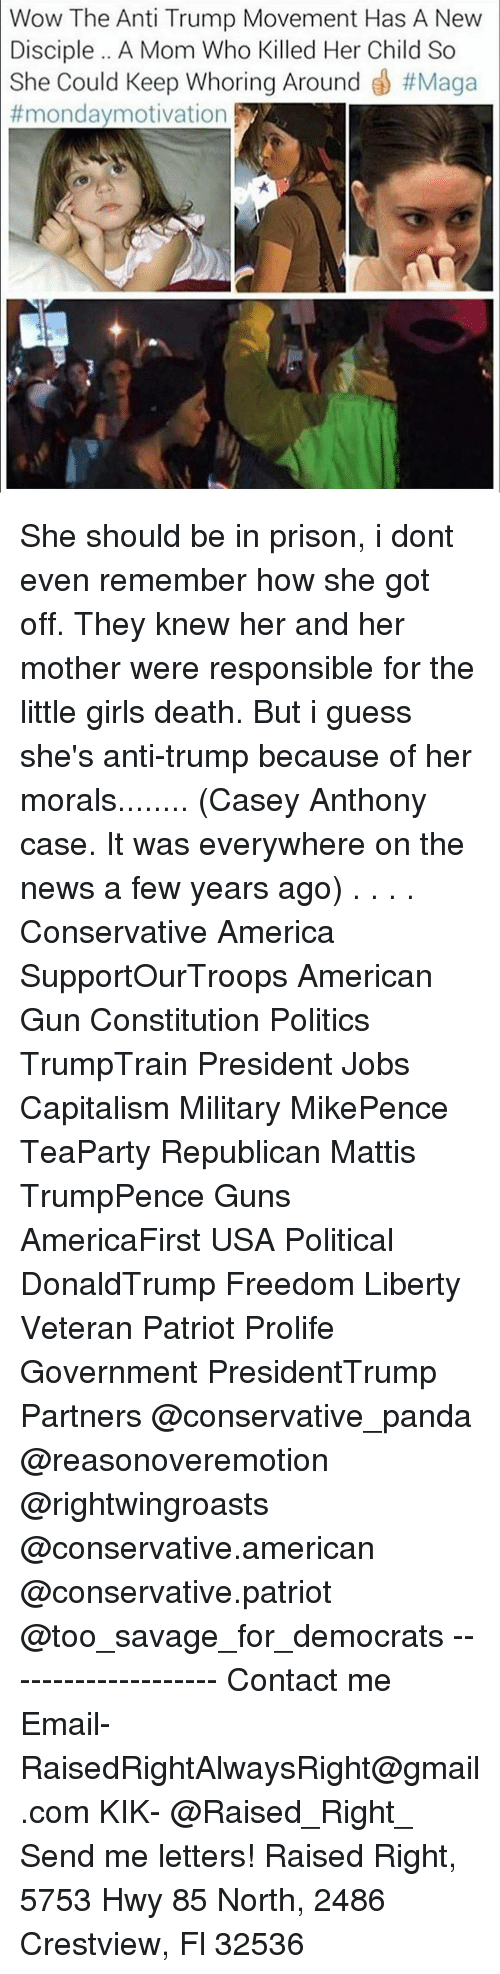 Memes, 🤖, and Casey Anthony: Wow The Anti Trump Movement Has A New  Disciple A Mom Who Killed Her Child So  She Could Keep Whoring Around  #Maga  mondaymotivation She should be in prison, i dont even remember how she got off. They knew her and her mother were responsible for the little girls death. But i guess she's anti-trump because of her morals........ (Casey Anthony case. It was everywhere on the news a few years ago) . . . . Conservative America SupportOurTroops American Gun Constitution Politics TrumpTrain President Jobs Capitalism Military MikePence TeaParty Republican Mattis TrumpPence Guns AmericaFirst USA Political DonaldTrump Freedom Liberty Veteran Patriot Prolife Government PresidentTrump Partners @conservative_panda @reasonoveremotion @rightwingroasts @conservative.american @conservative.patriot @too_savage_for_democrats -------------------- Contact me ●Email- RaisedRightAlwaysRight@gmail.com ●KIK- @Raised_Right_ ●Send me letters! Raised Right, 5753 Hwy 85 North, 2486 Crestview, Fl 32536